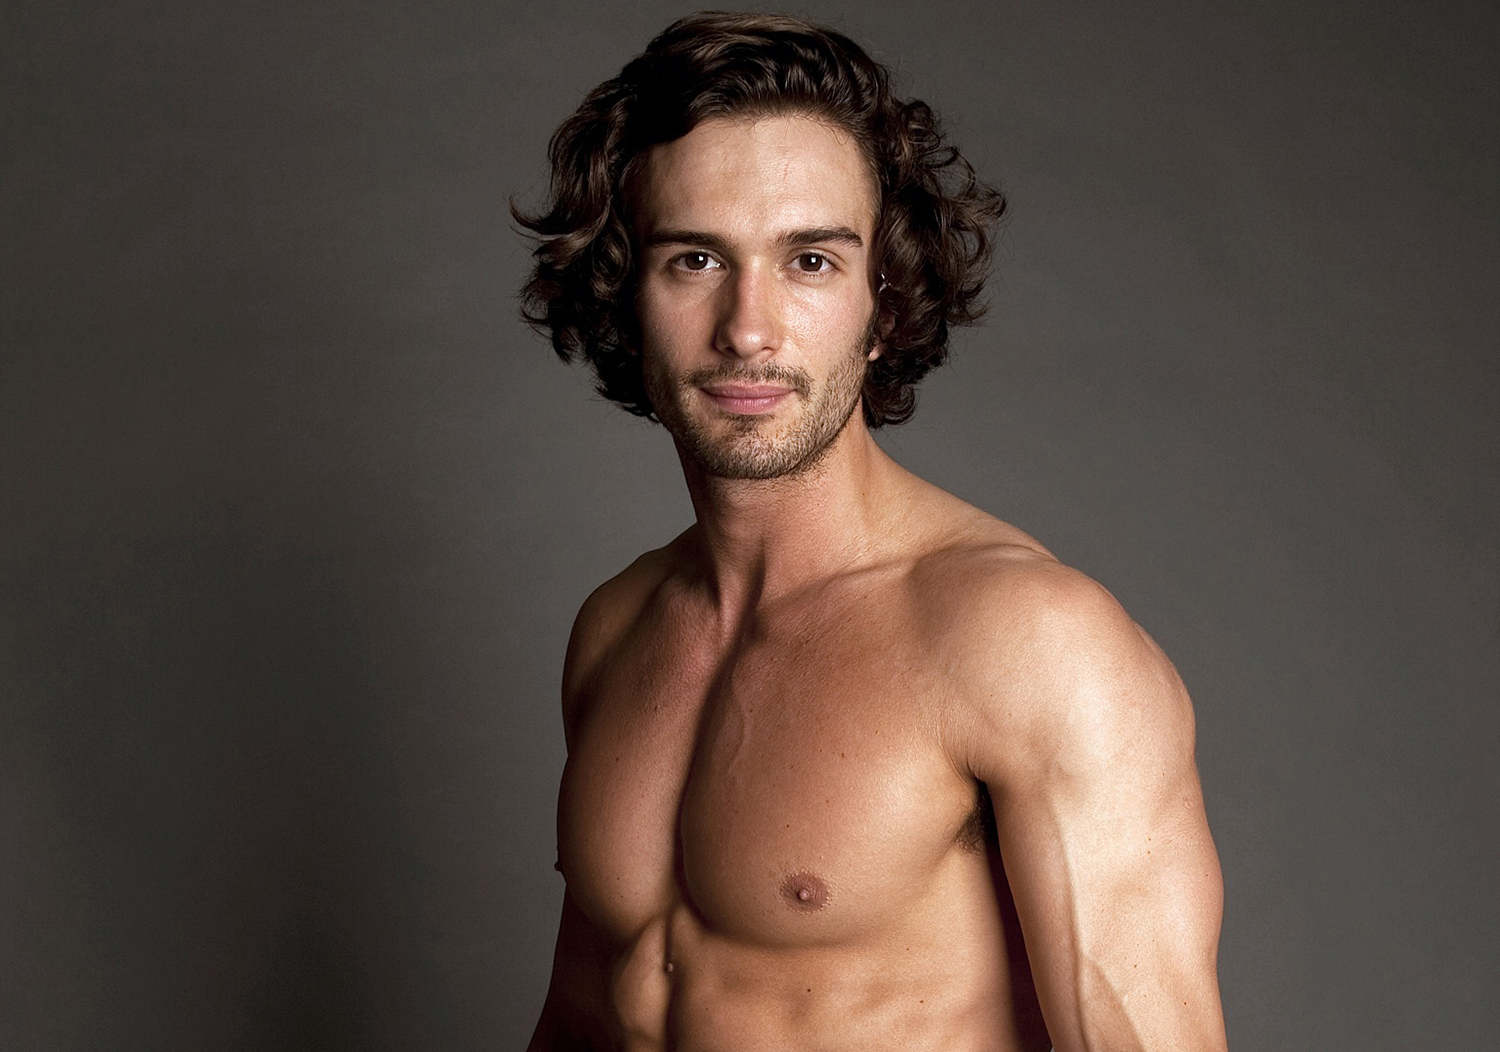 Joe Wicks gives it to us straight about health & fitness